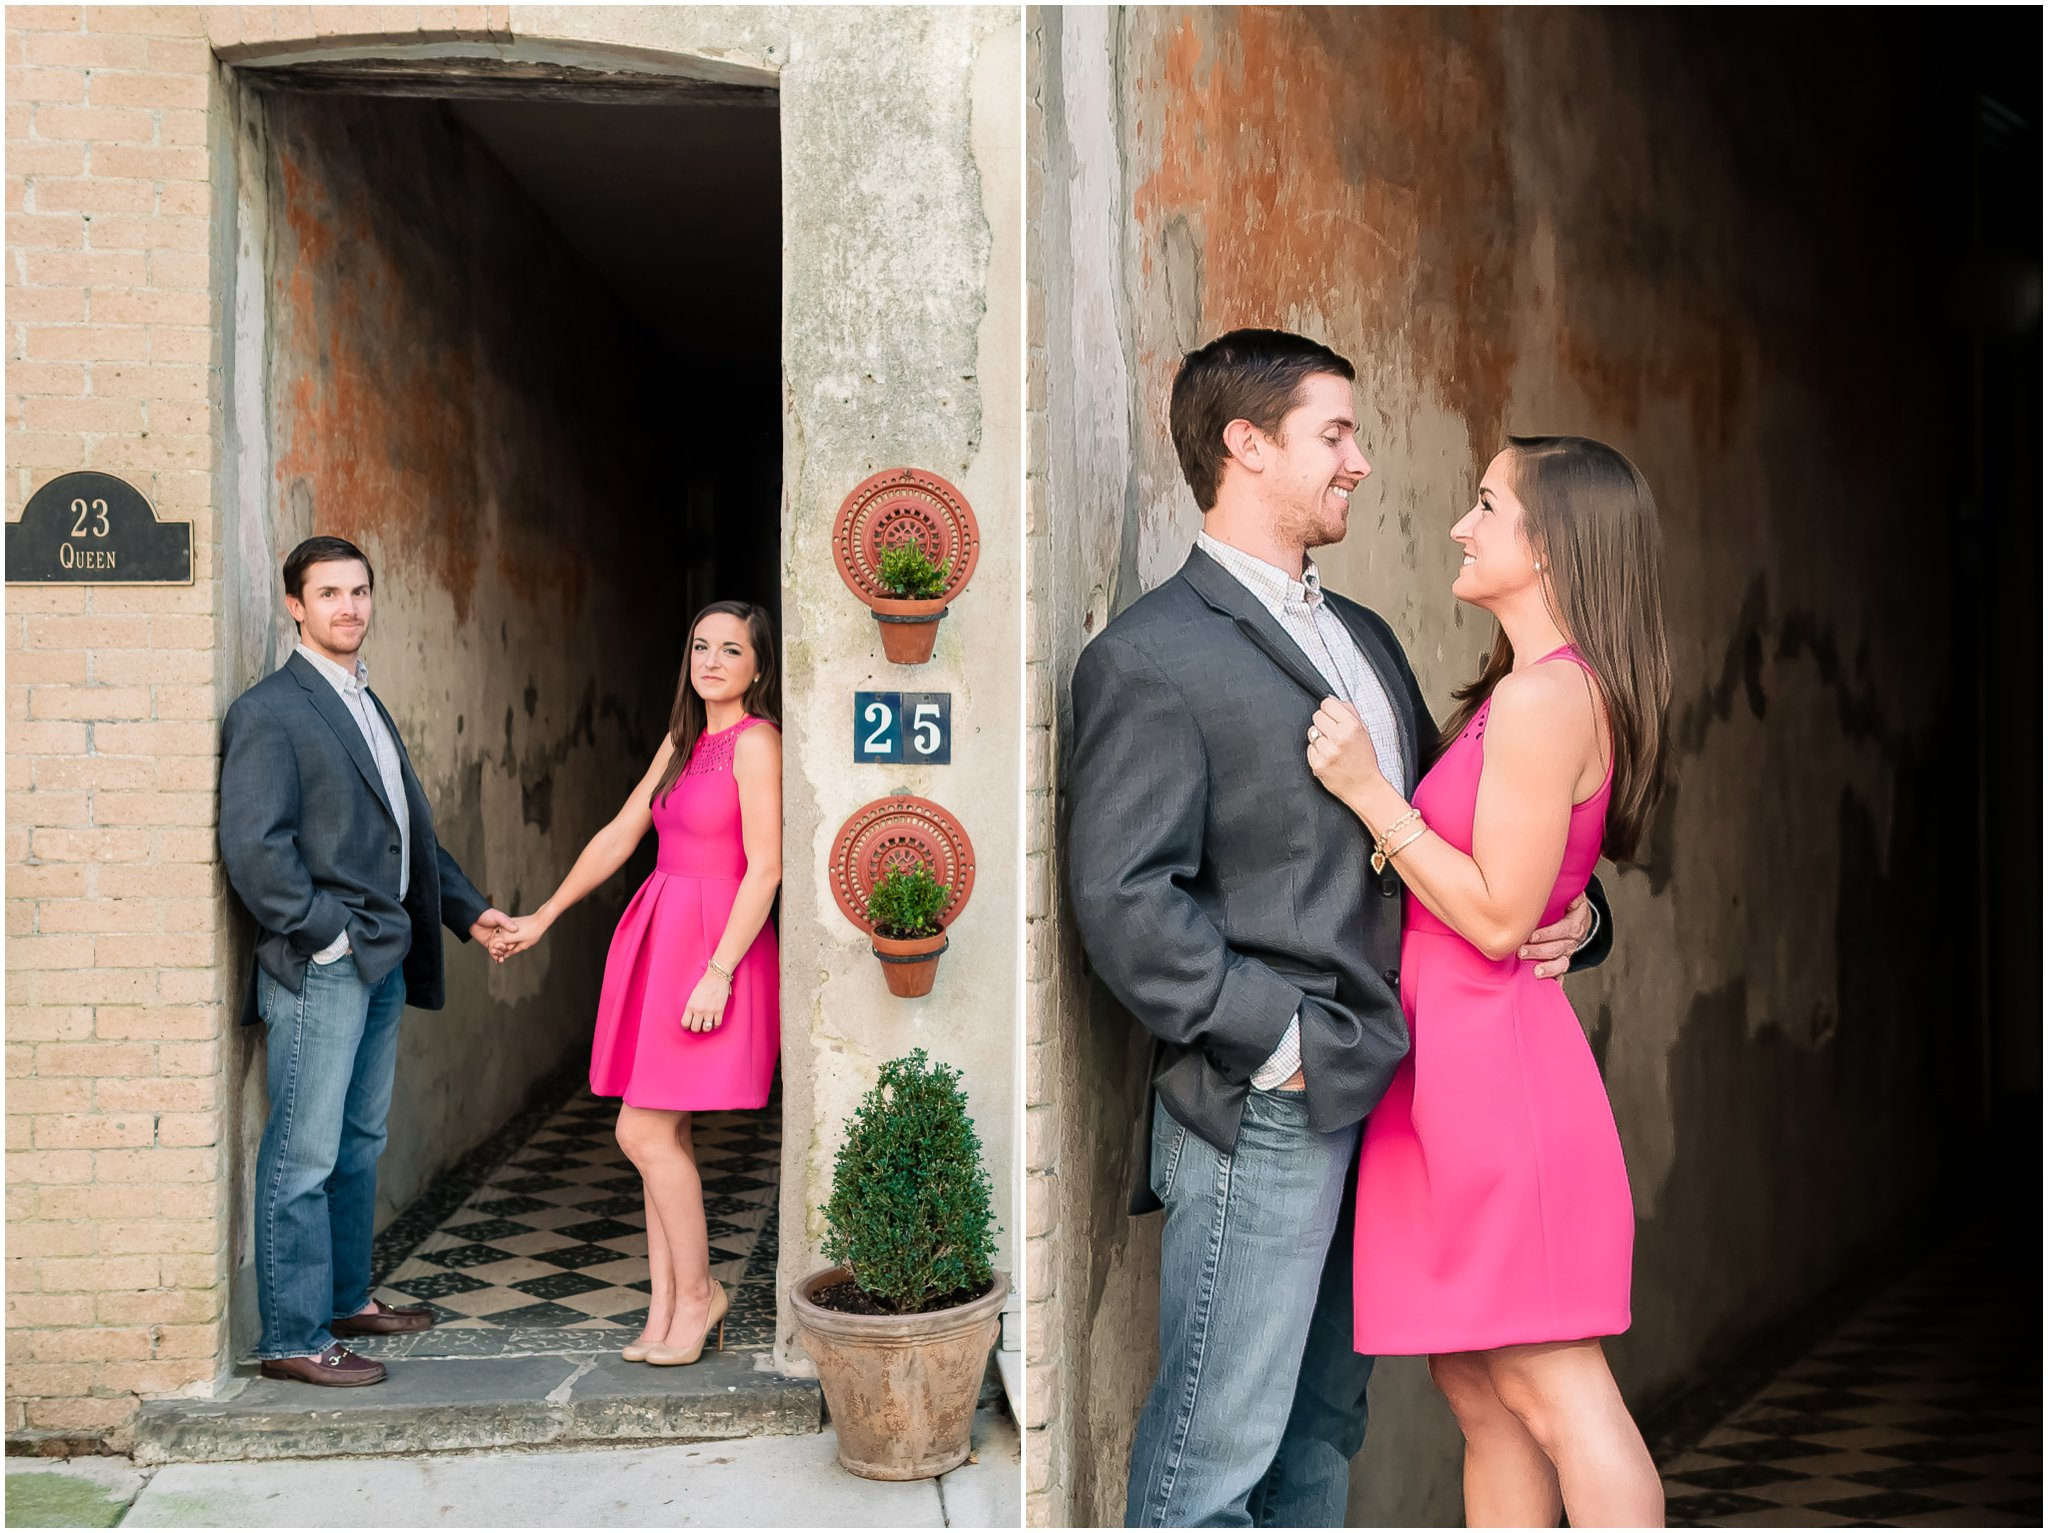 Stylish, romantic, natural and laid back Downtown Engagement Photography, Pink fuchsia dress portraits, Charleston SC engagement and wedding Photographer